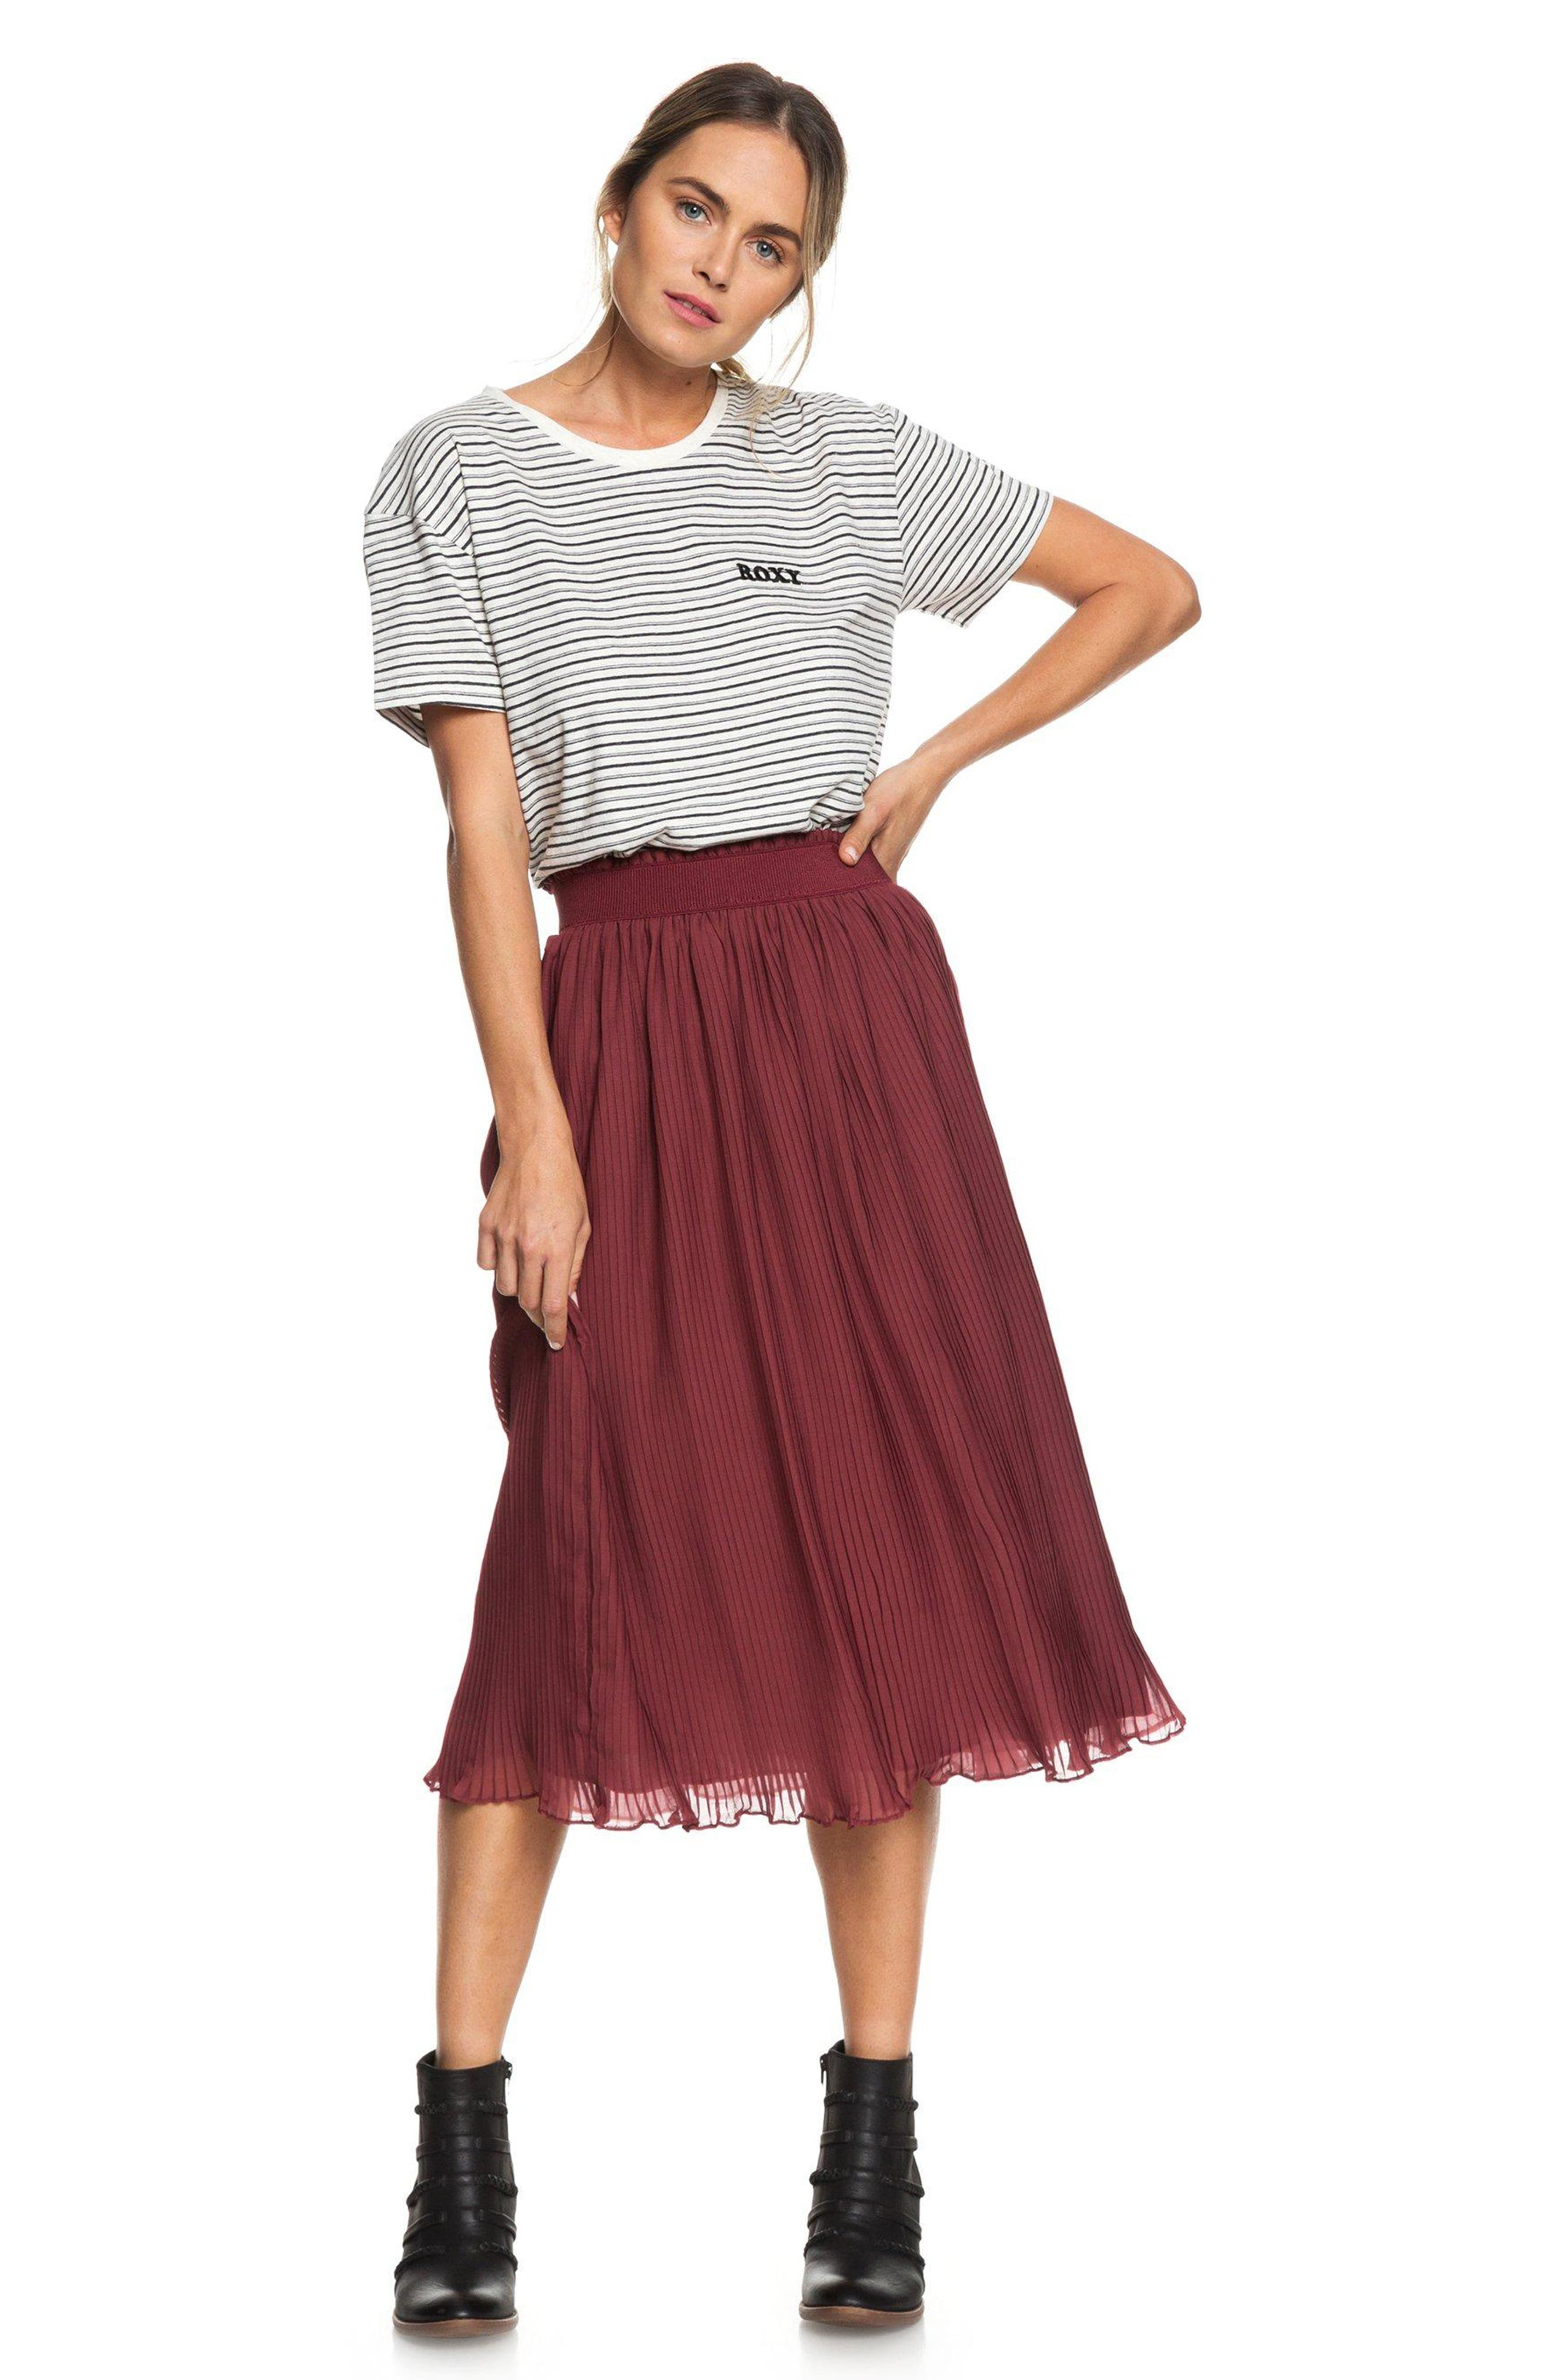 ROXY Green Canyon Midi Skirt, Main, color, OXBLOOD RED